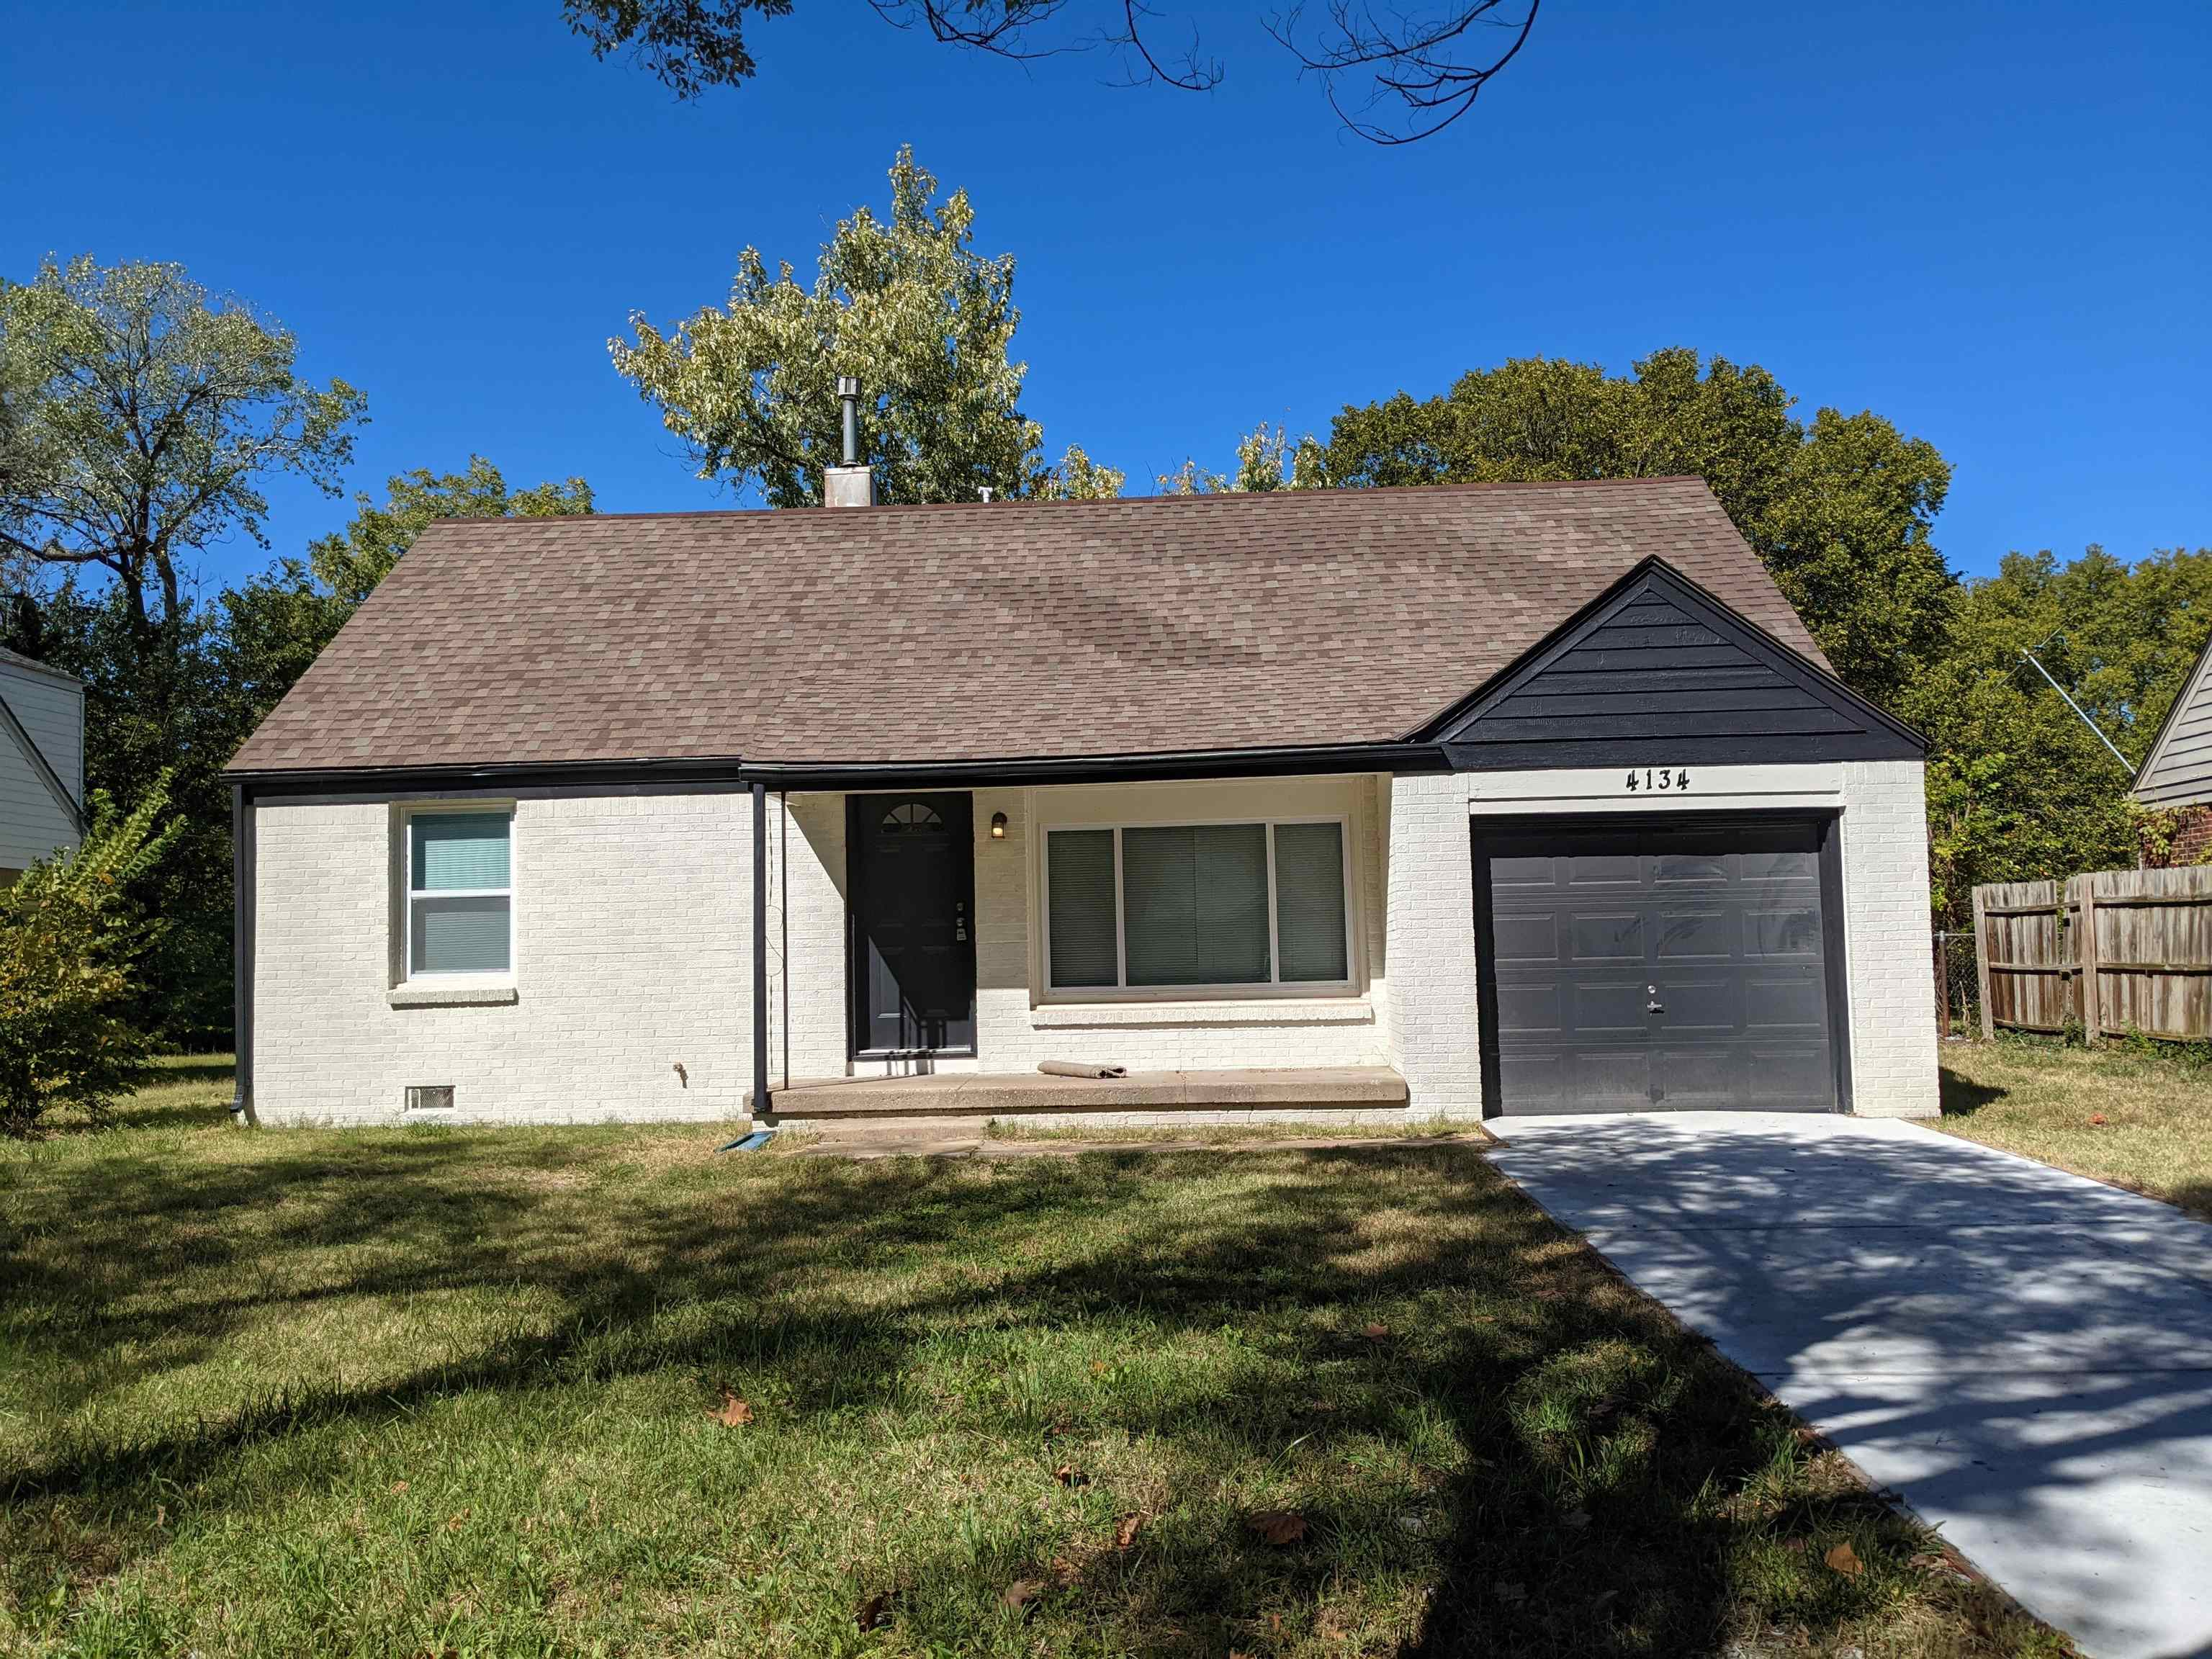 All New & Ready, 3BR 1BA 1Car garage home, just 1 short block to the University!  Full brick with lo